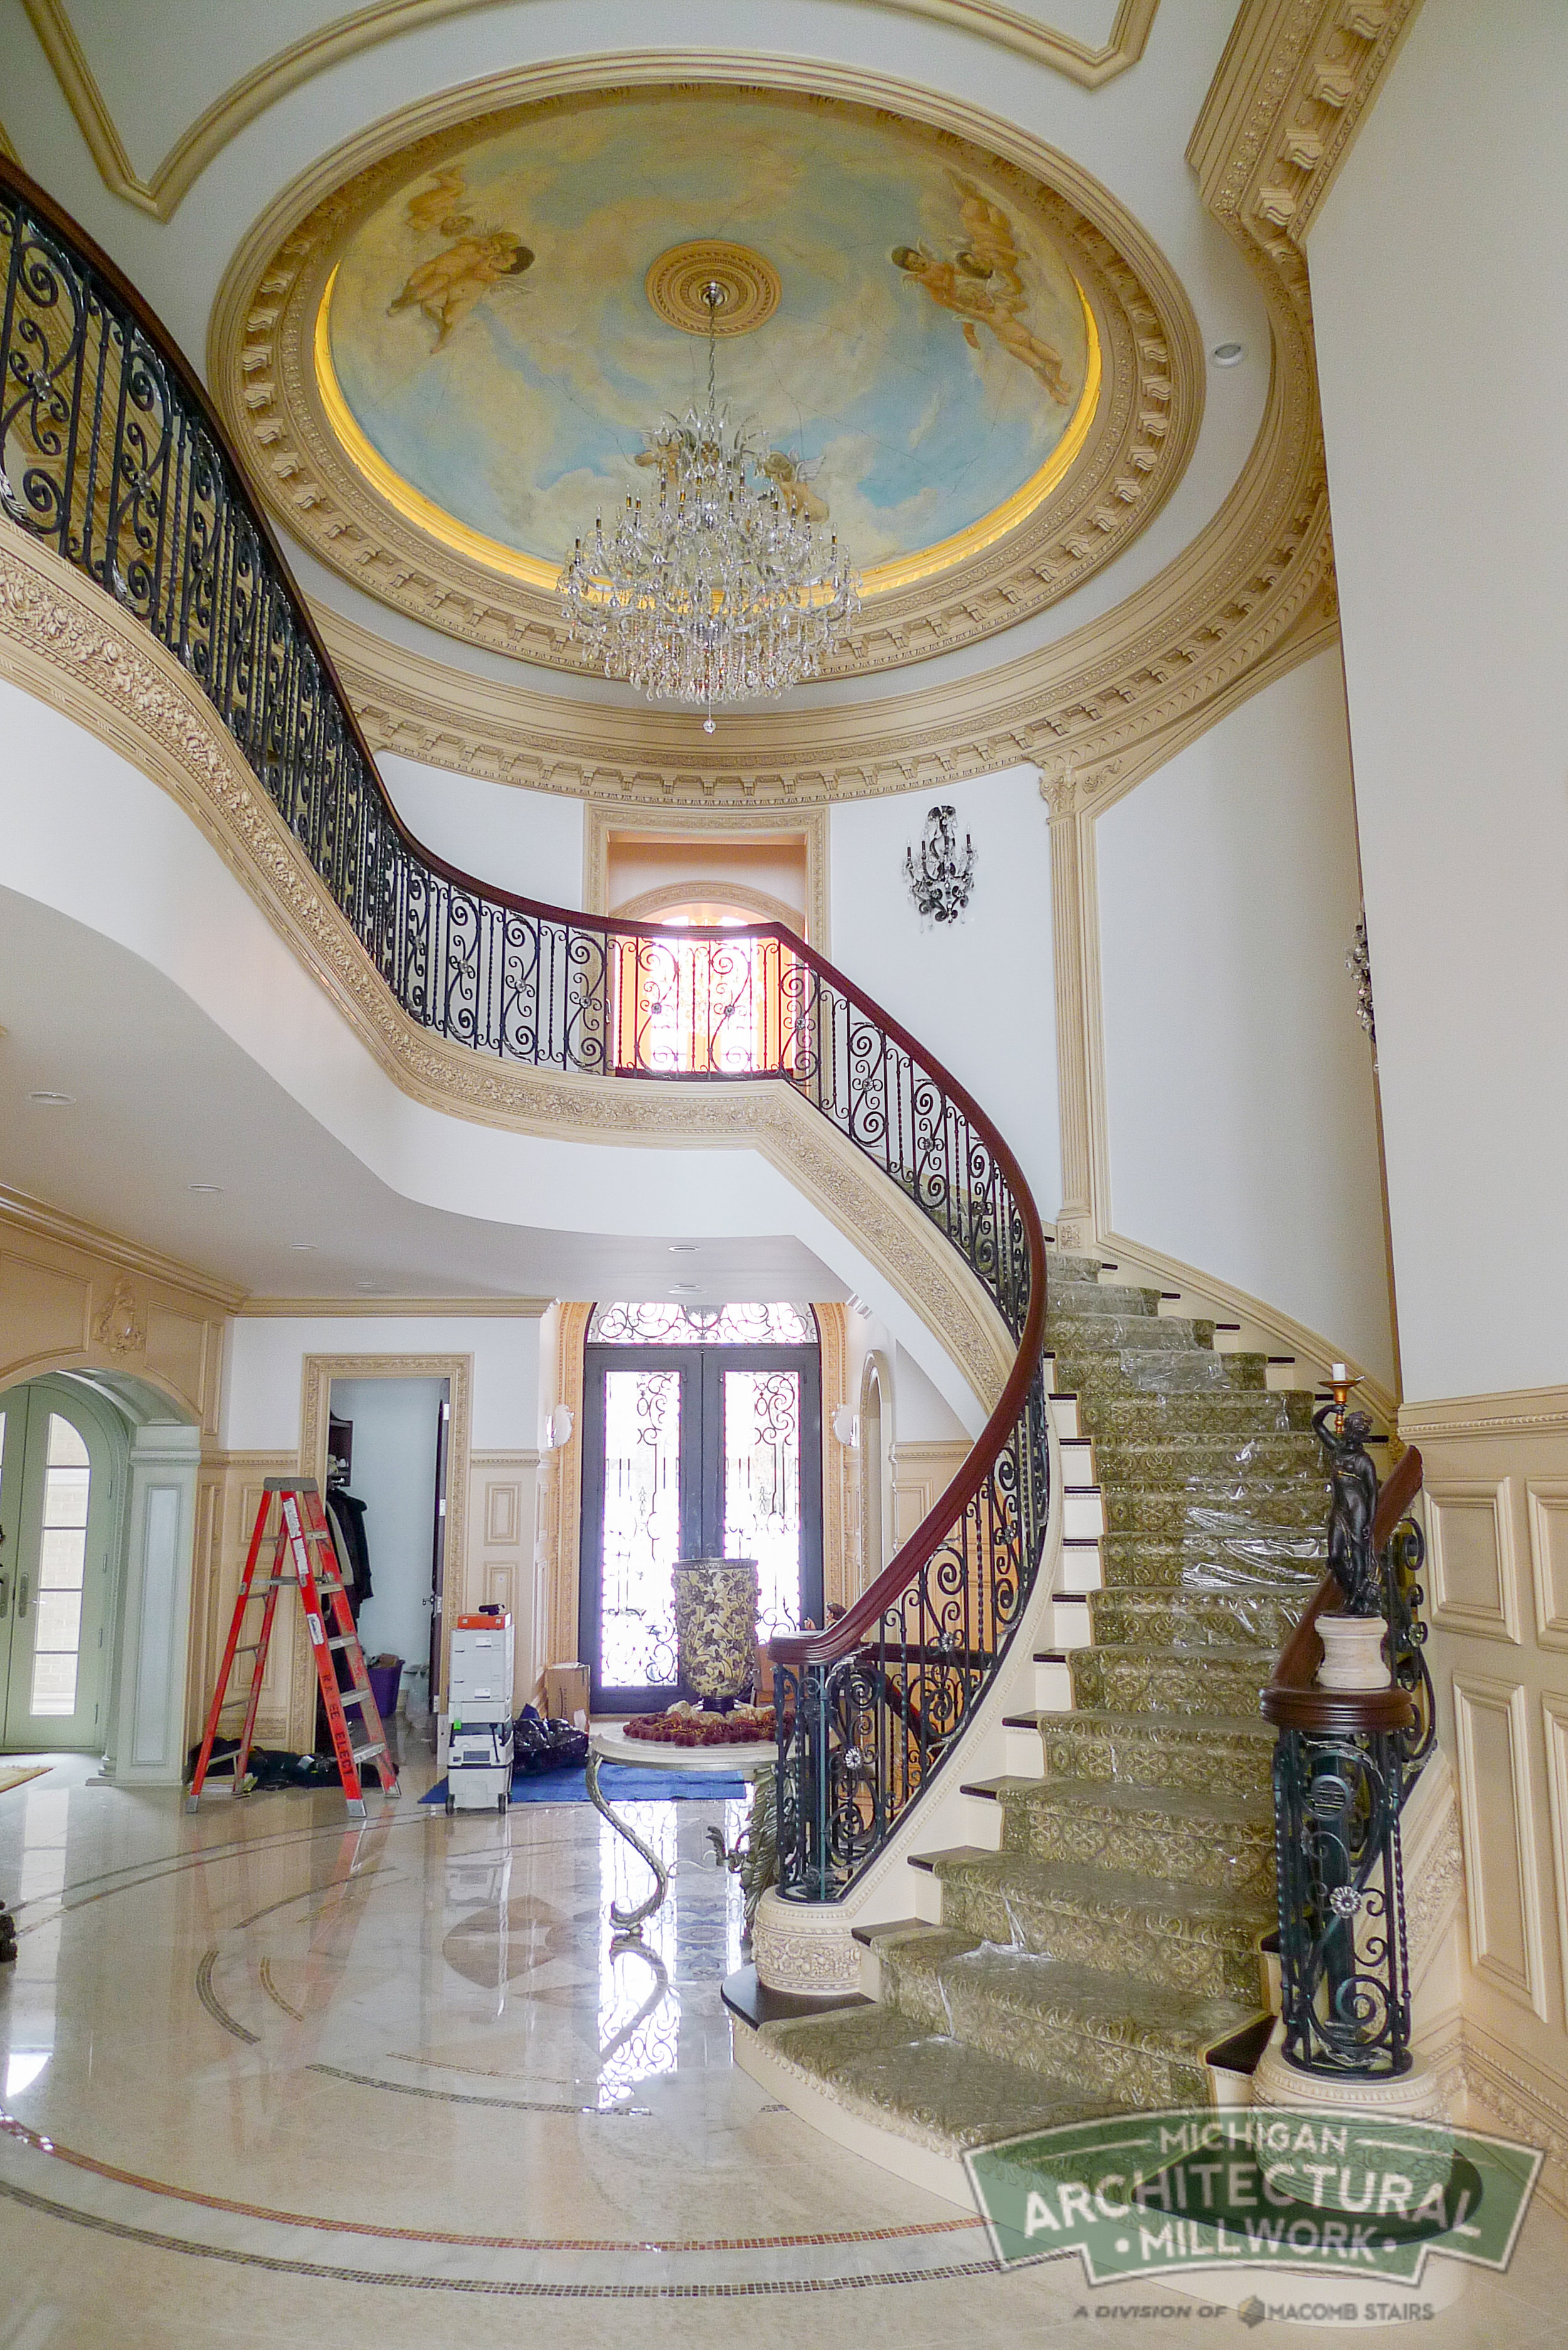 Michigan Architectural Millwork- Moulding and Millwork Photo-135.jpg